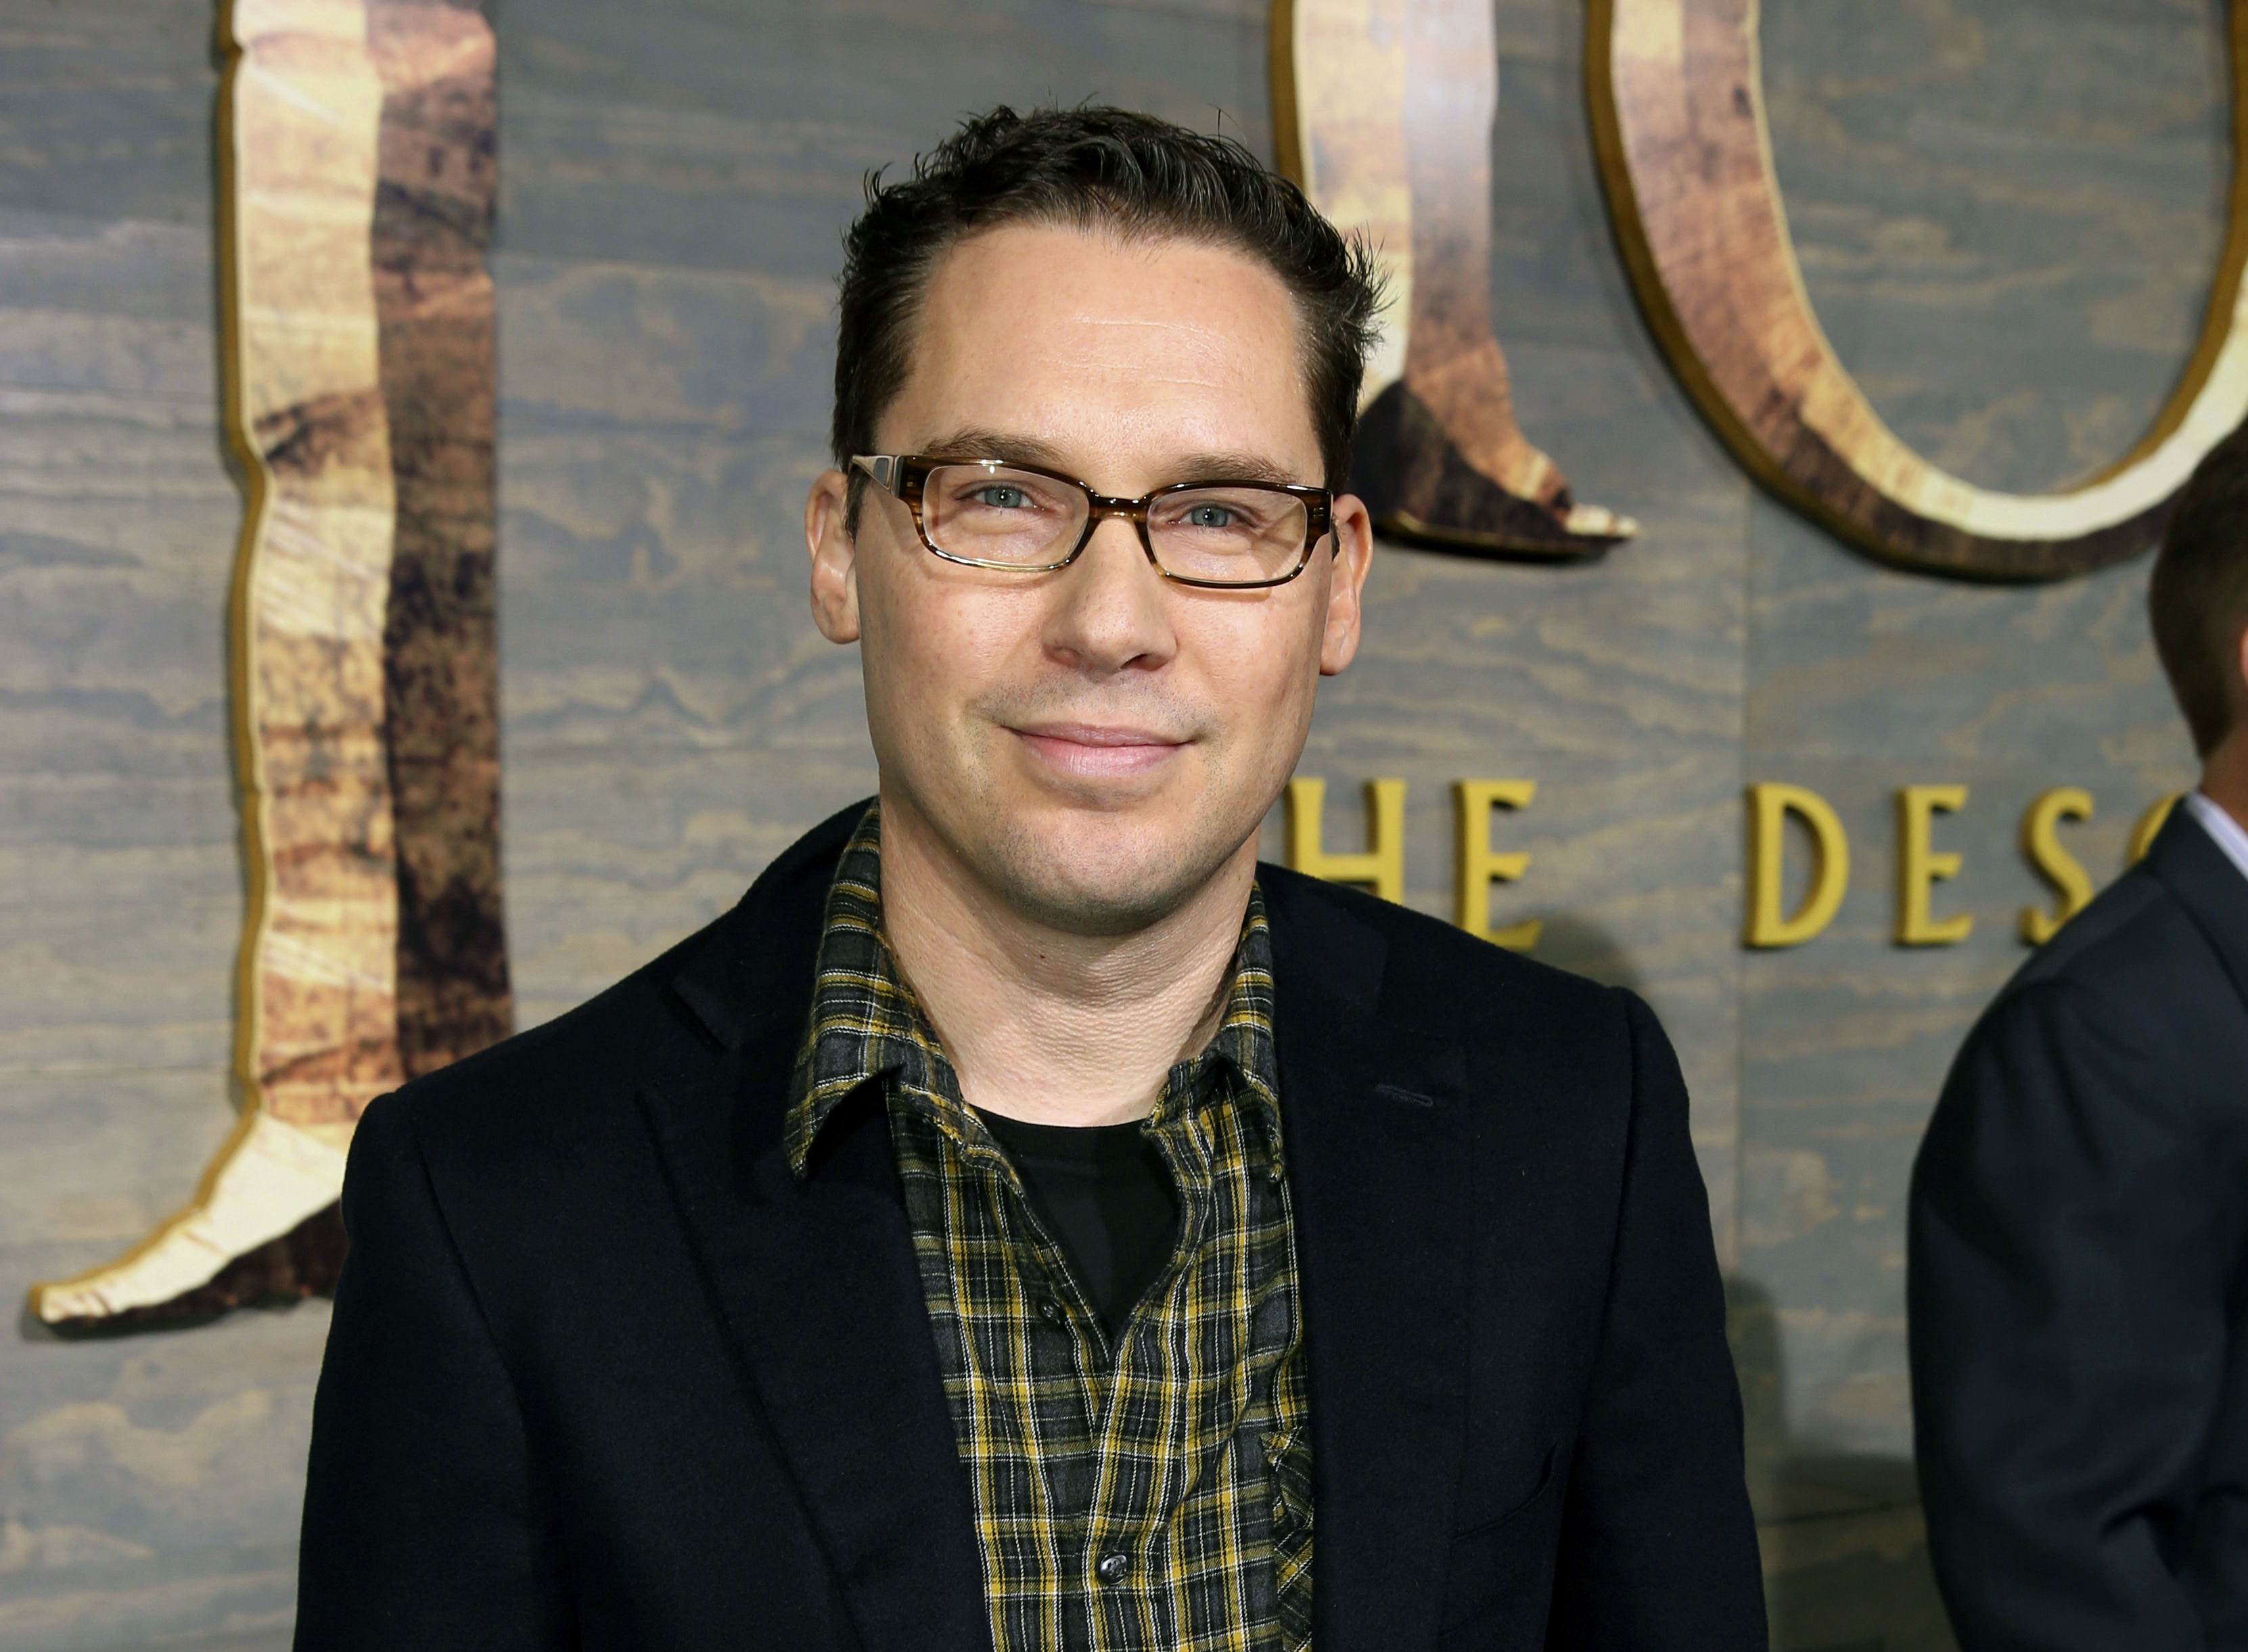 Director Bryan Singer reaches settlement of rape claim